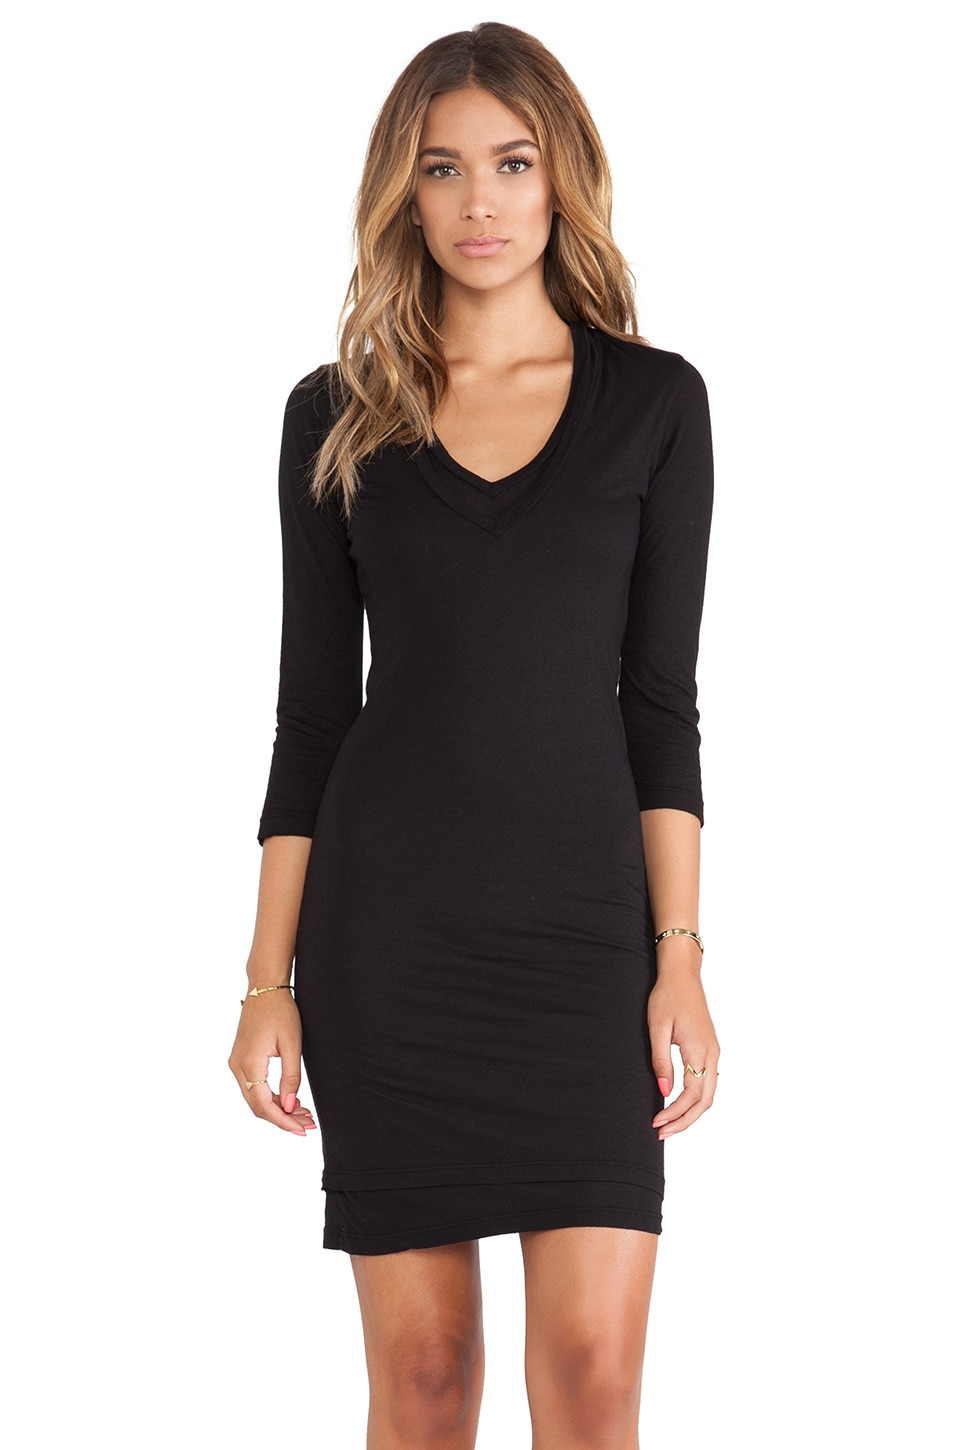 MONROW Heather Grey Tissue Double V Neck Dress in Black